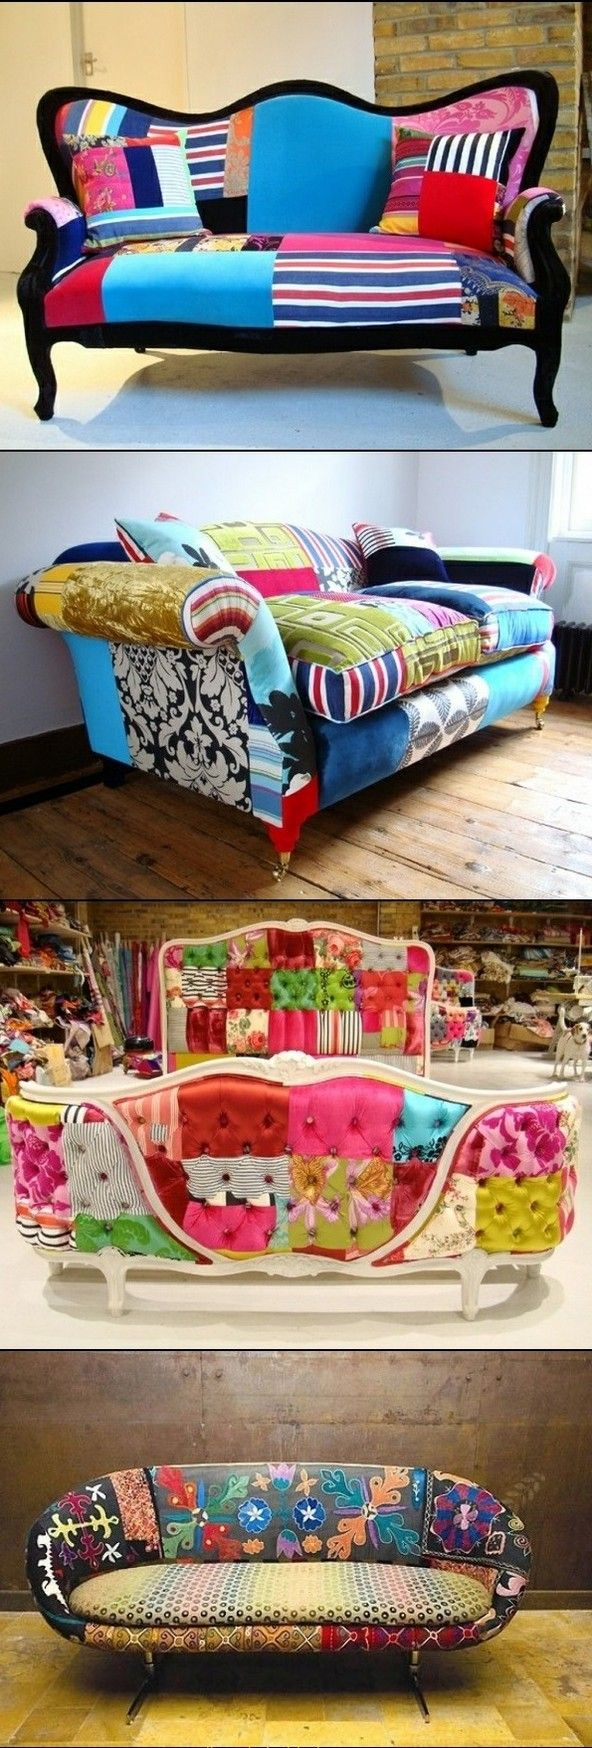 DIY SOFA RENOVATION...talk about inspiring projects for Spring! Just saying...and of course, you can get the funky sofa at your local Goodwill | www.bocadolobo.com/  #modernsofa #sofaideas